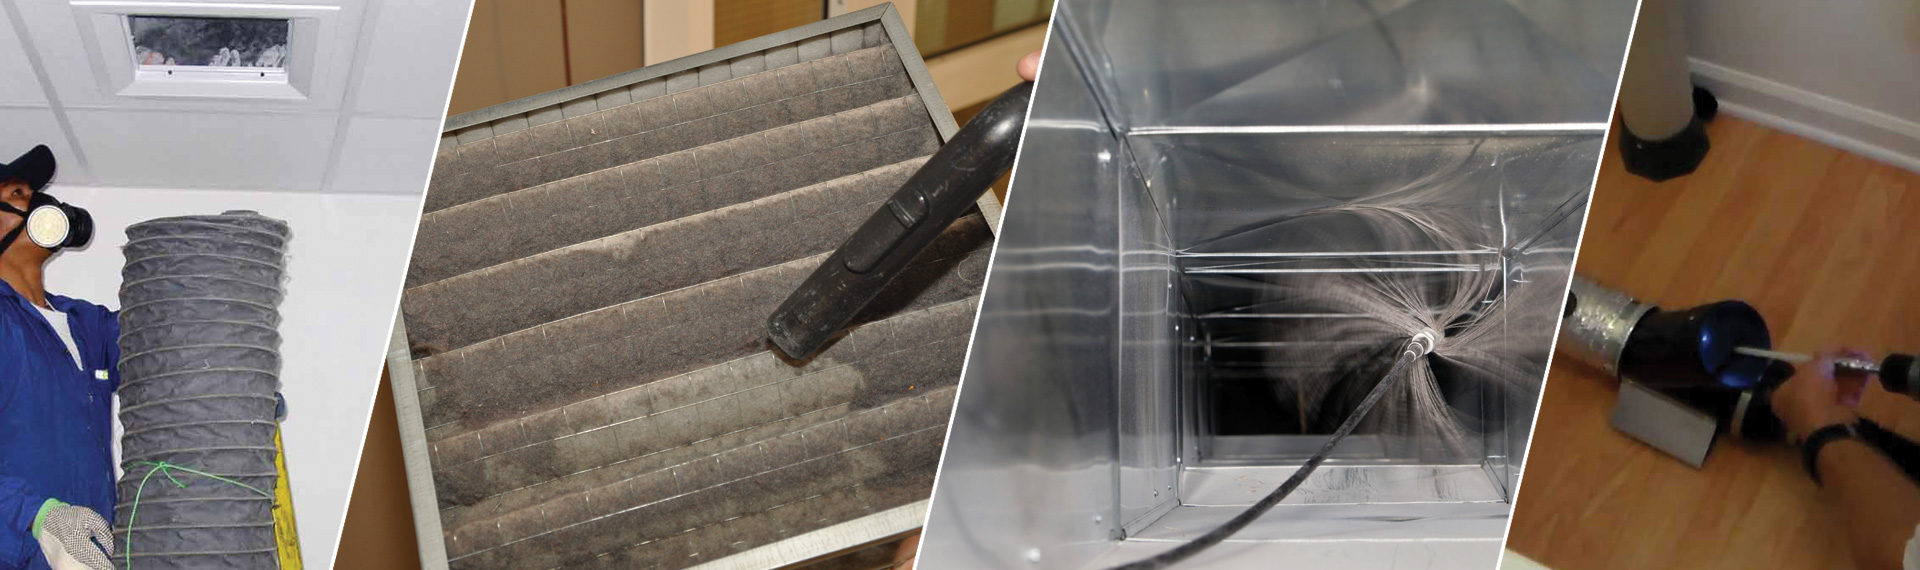 Reliable Air Duct Cleaning Montecito CA